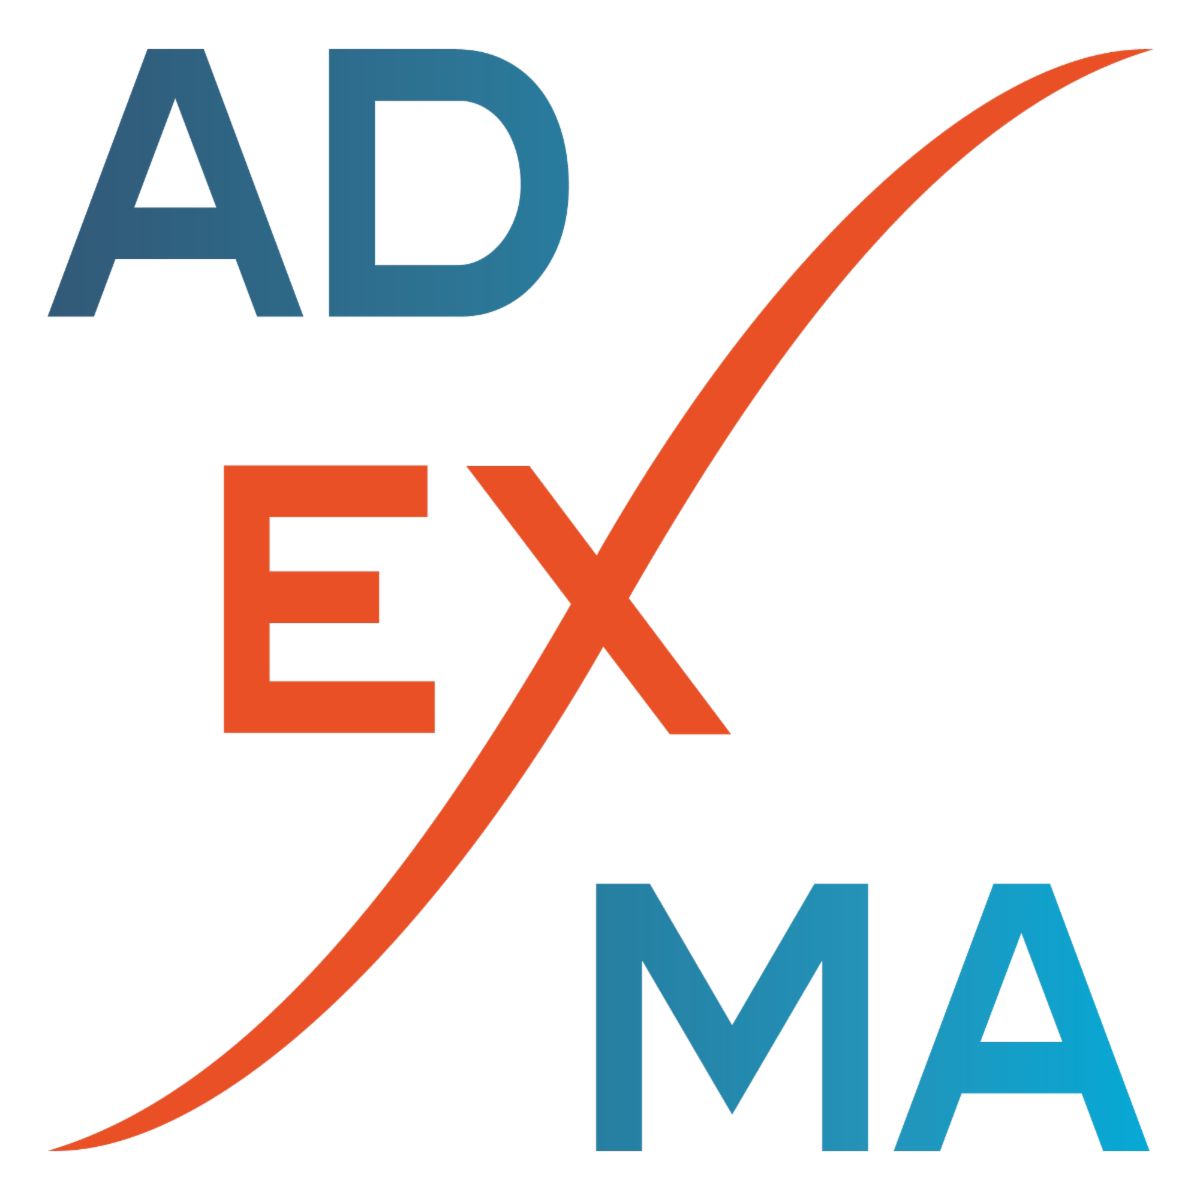 Adexma Square Final New.png